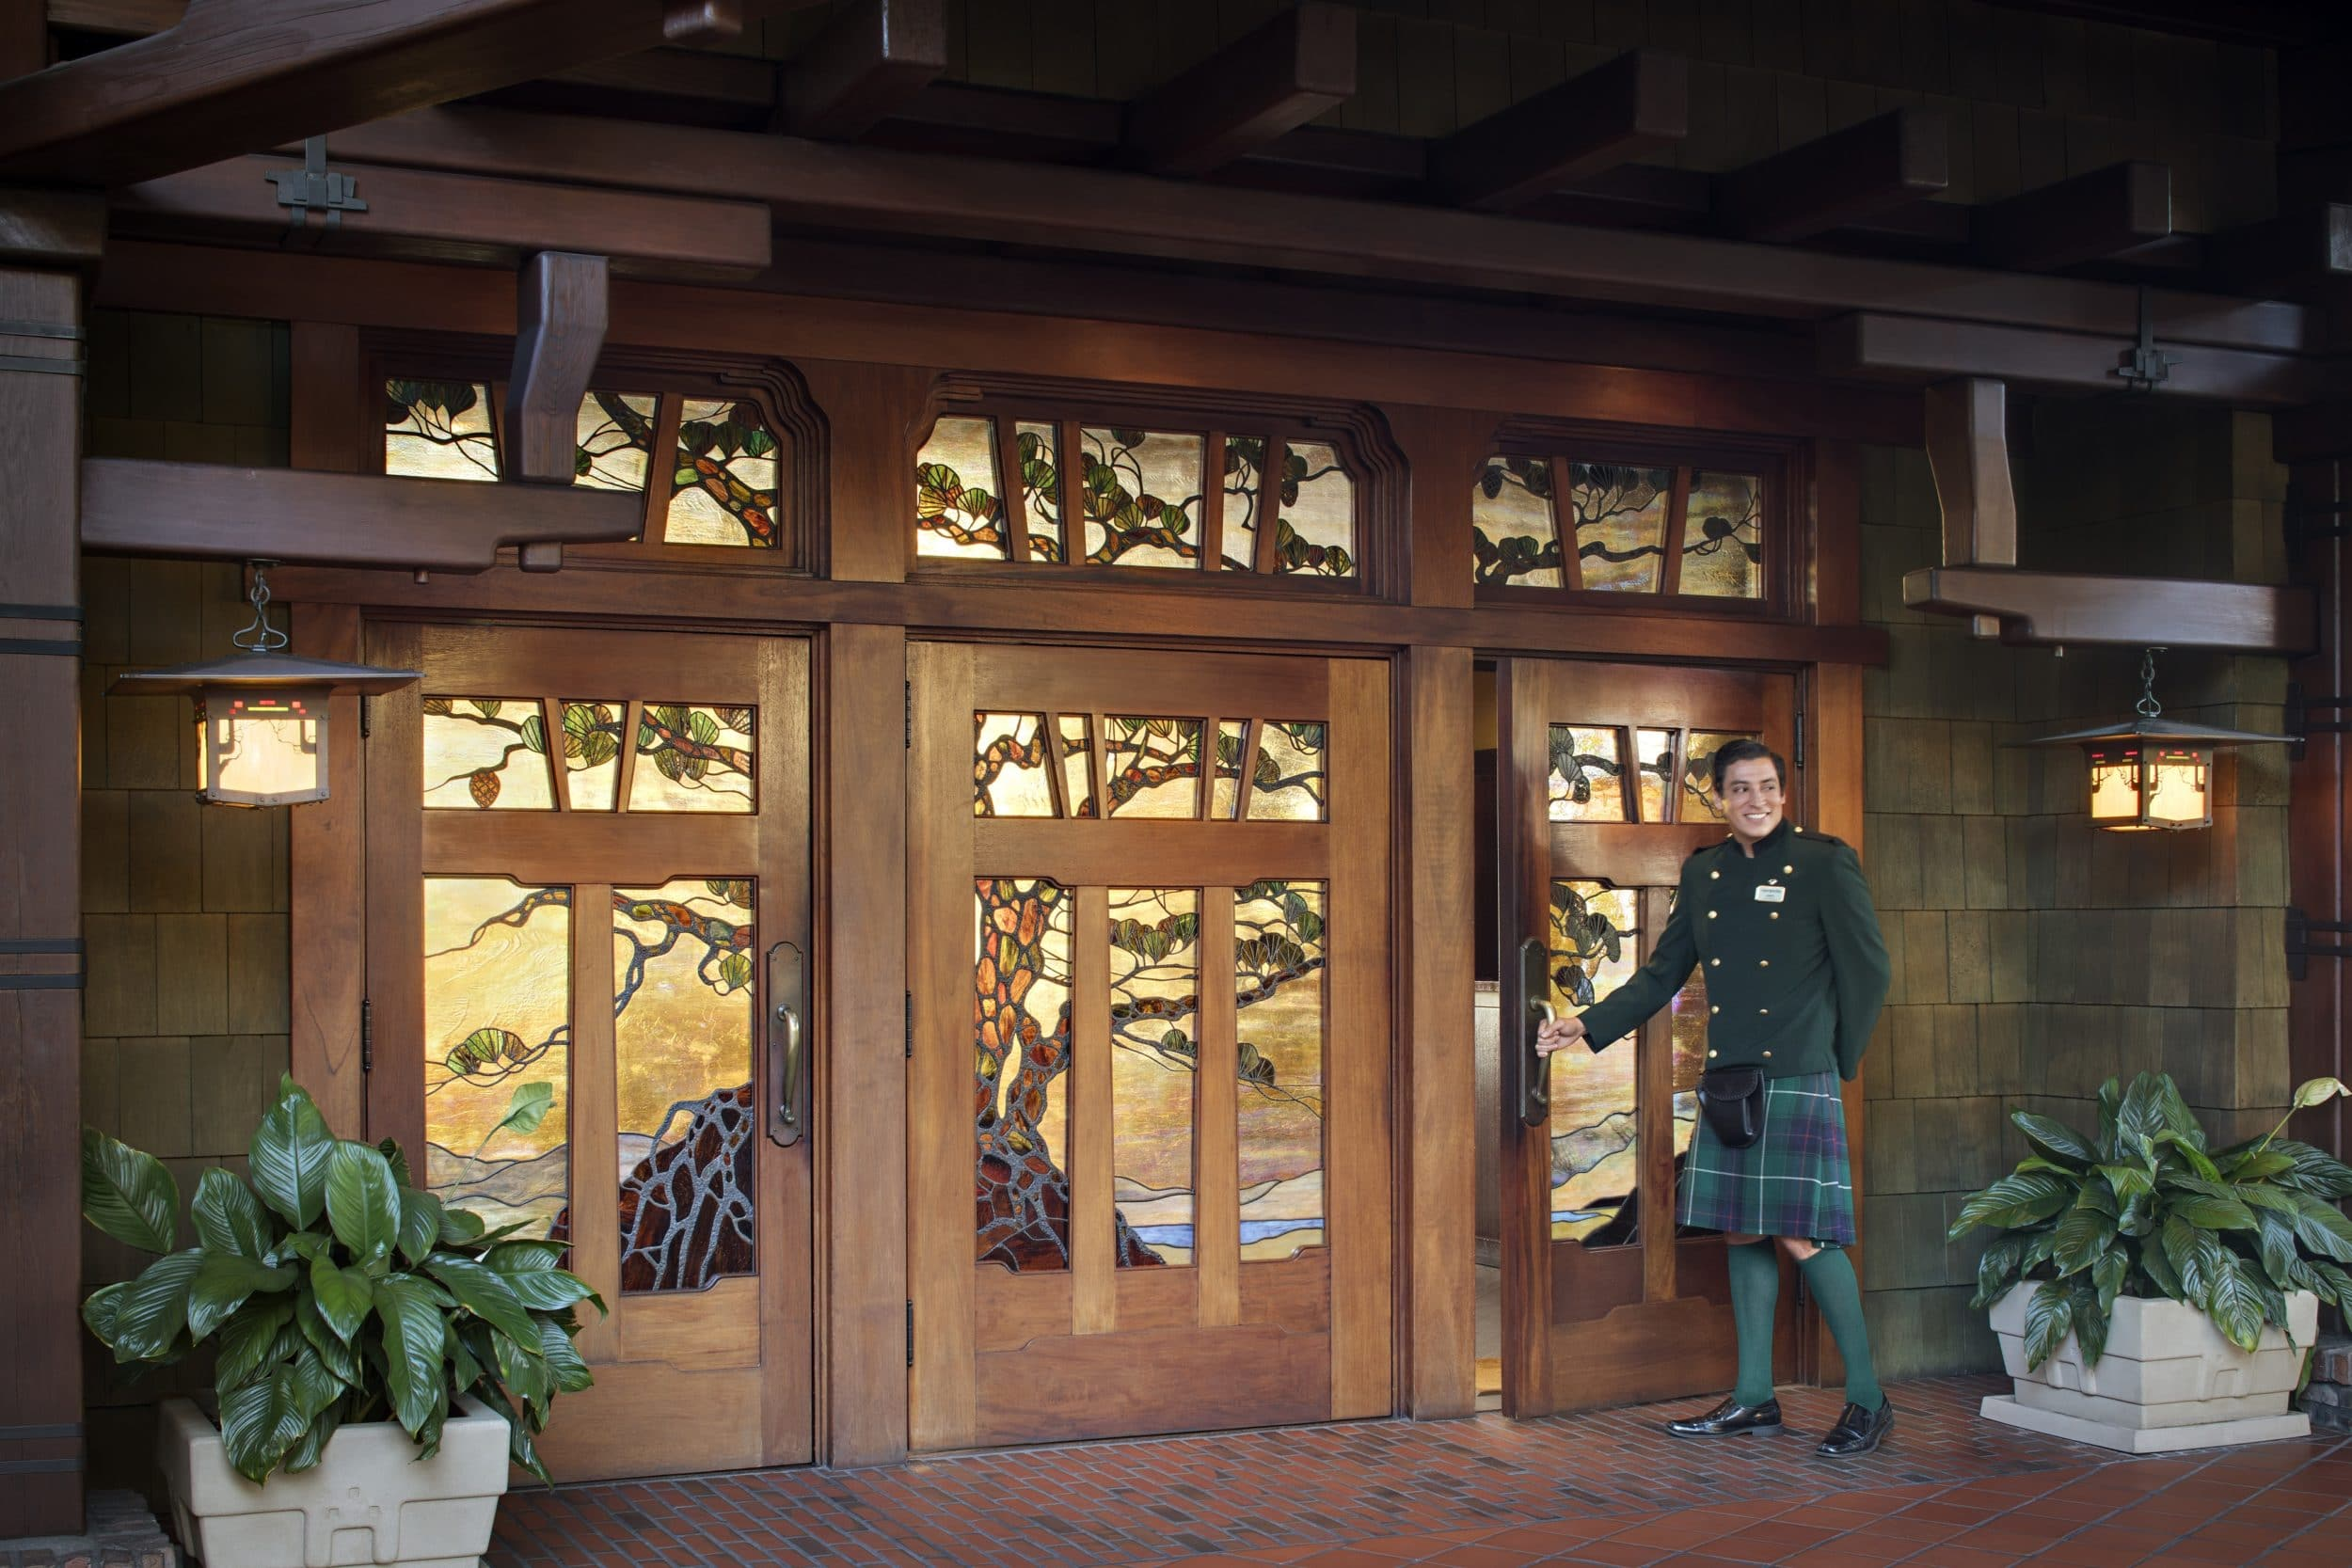 Doormen in kilts at The Lodge at Torrey Pines